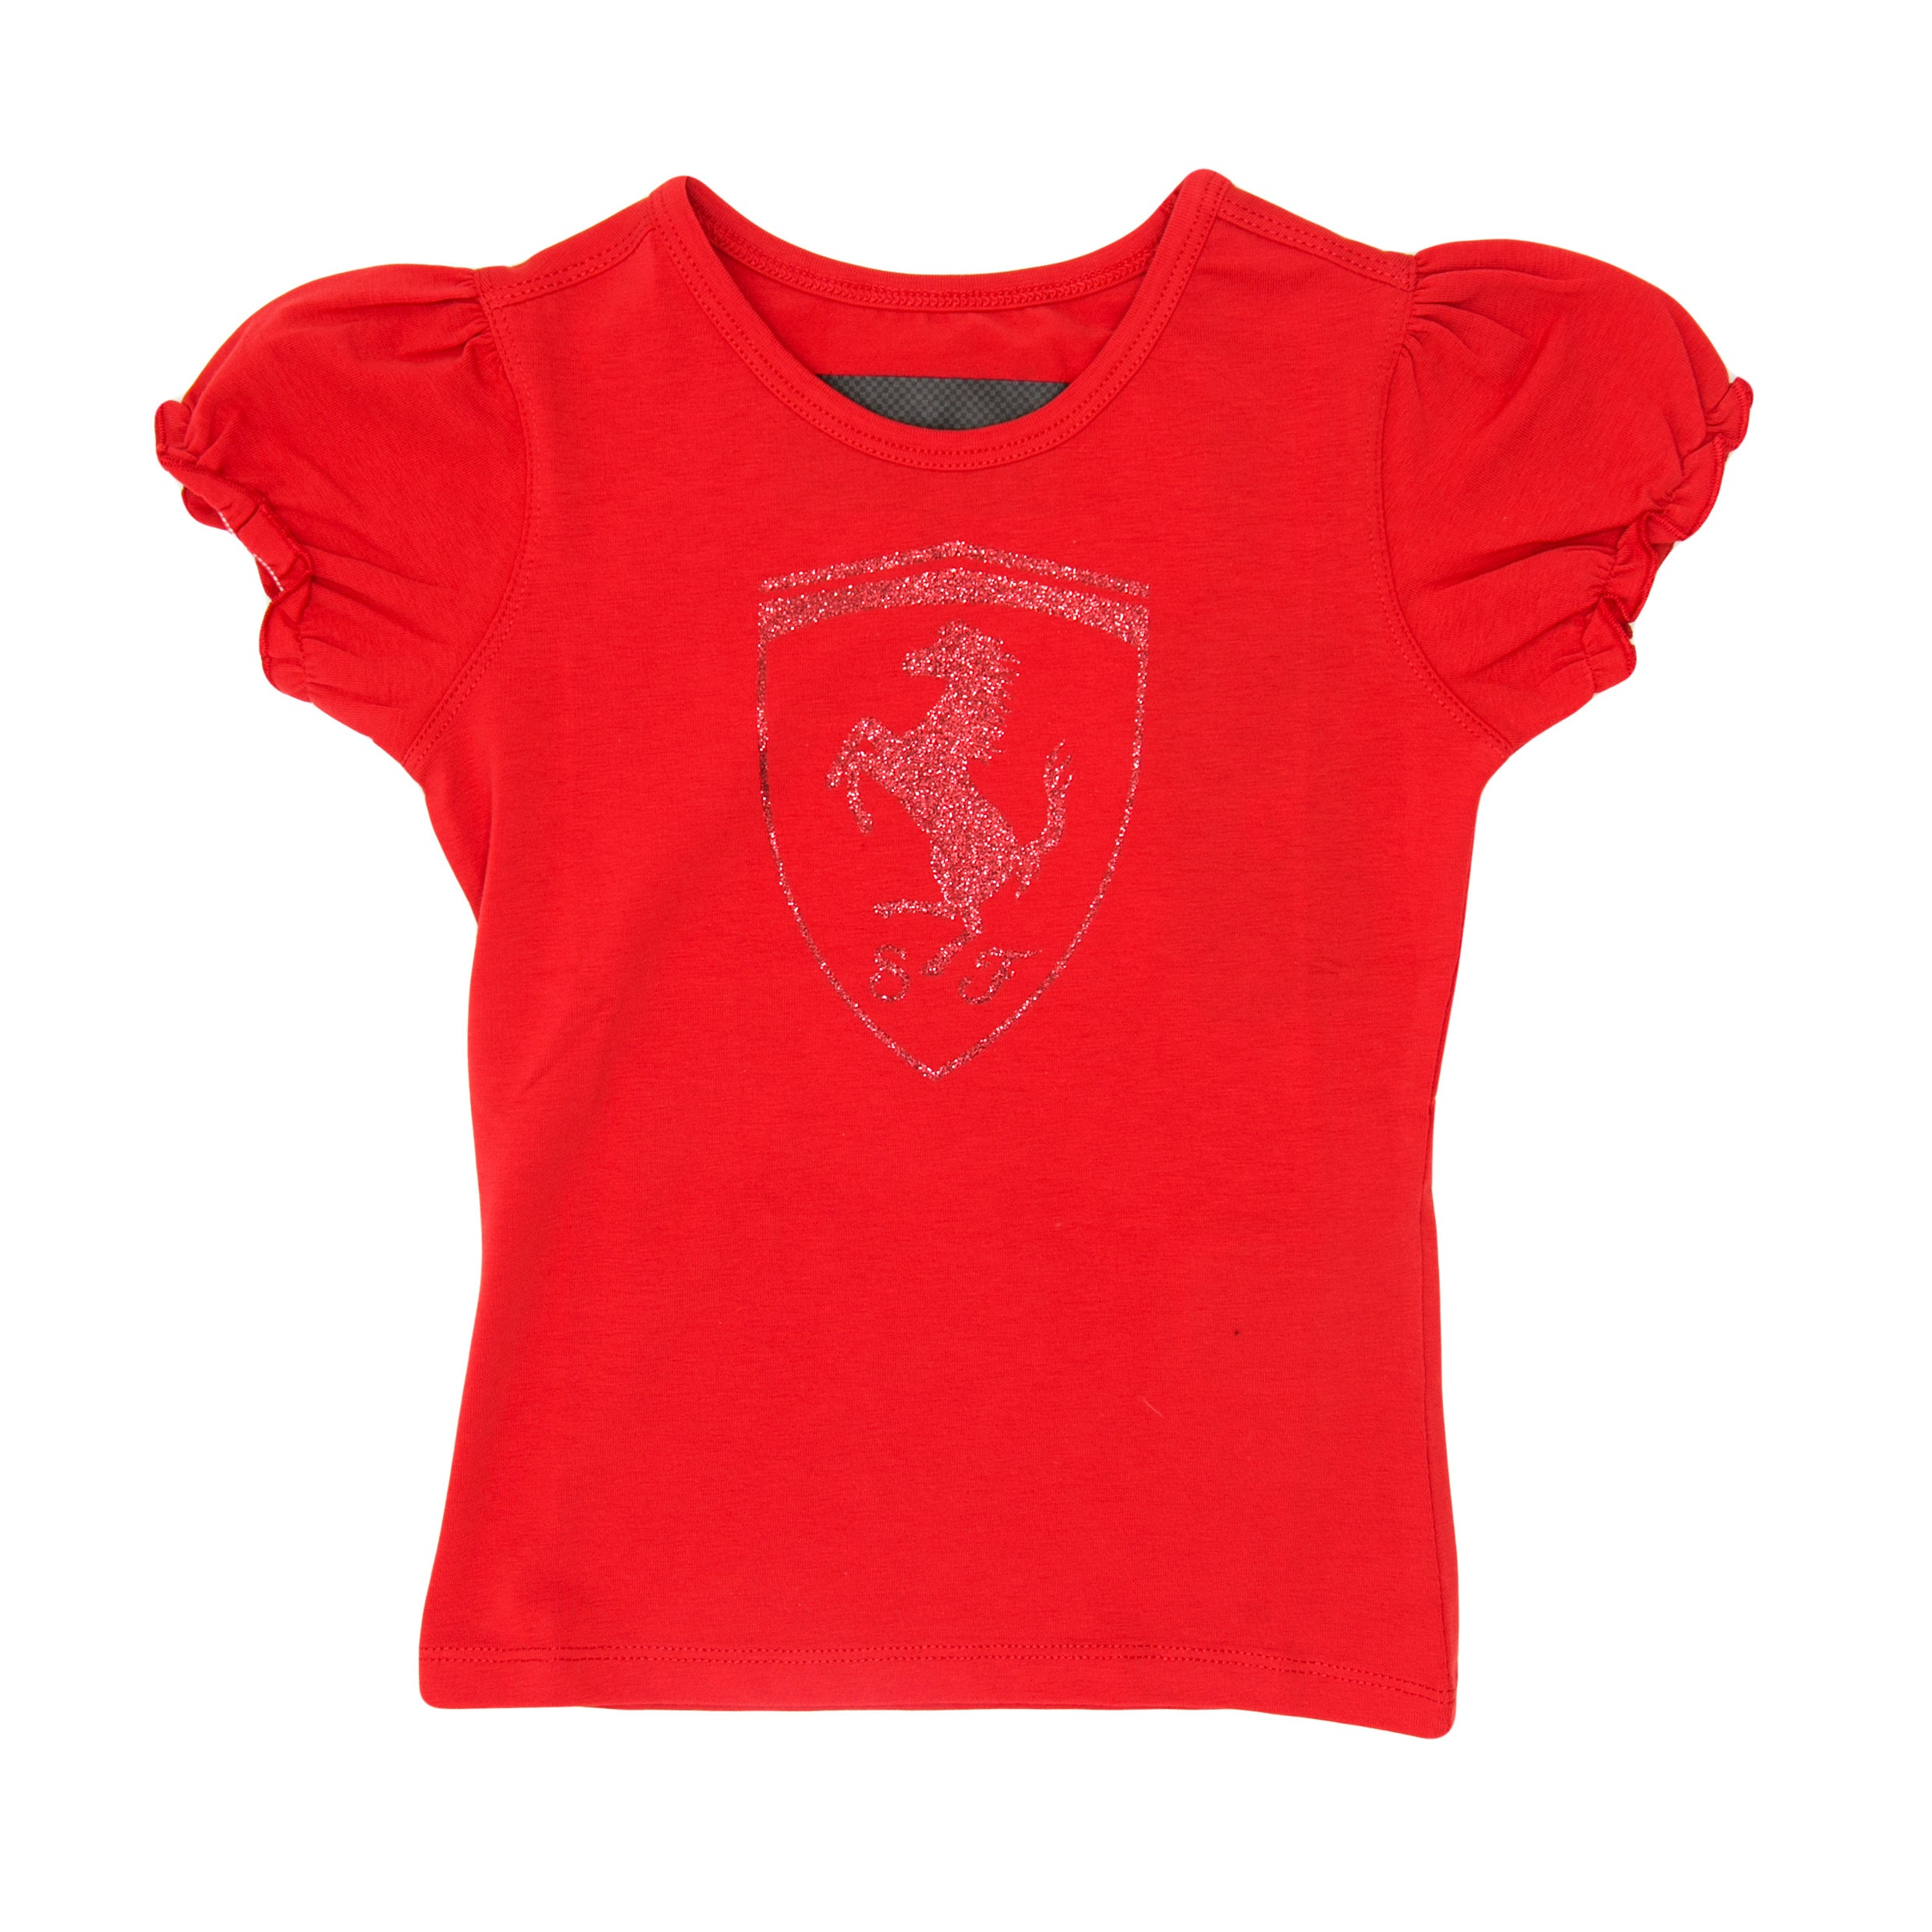 Girls Shield Glitter T-shirt  *MORE COLORS AVAILABLE